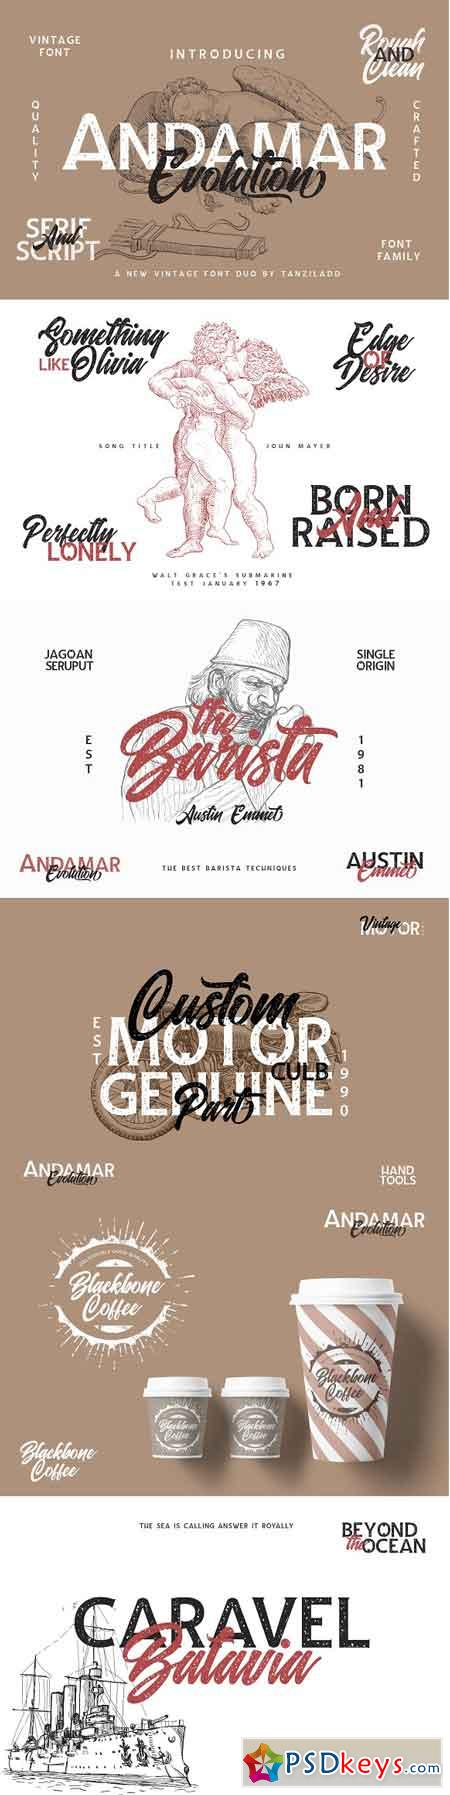 Andamar Font Family 2595763